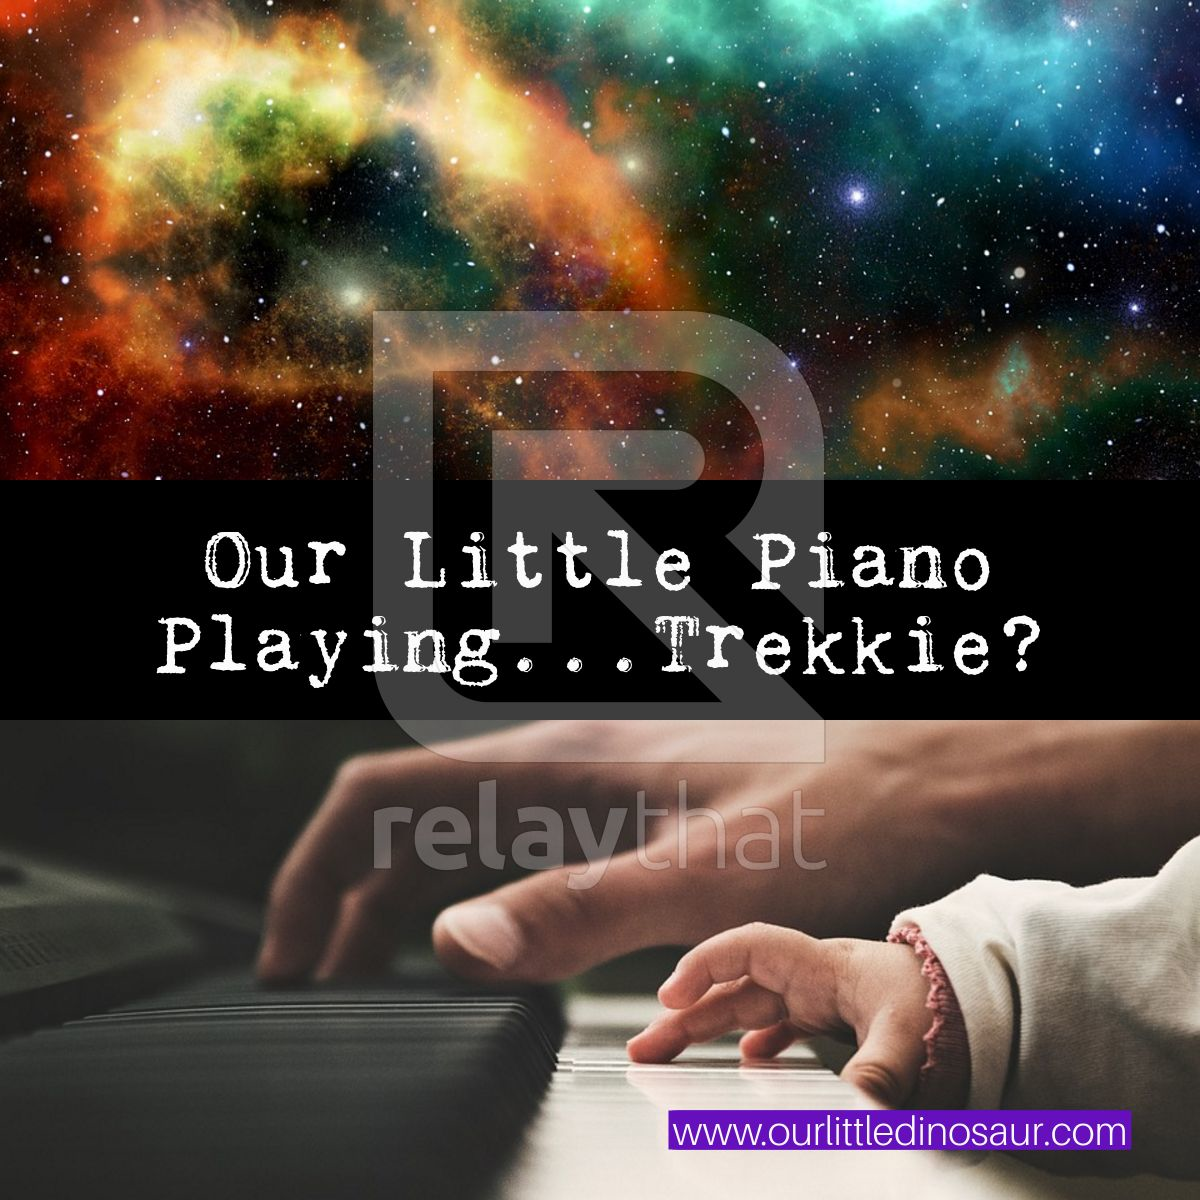 Our Little Piano Playing...Trekkie?